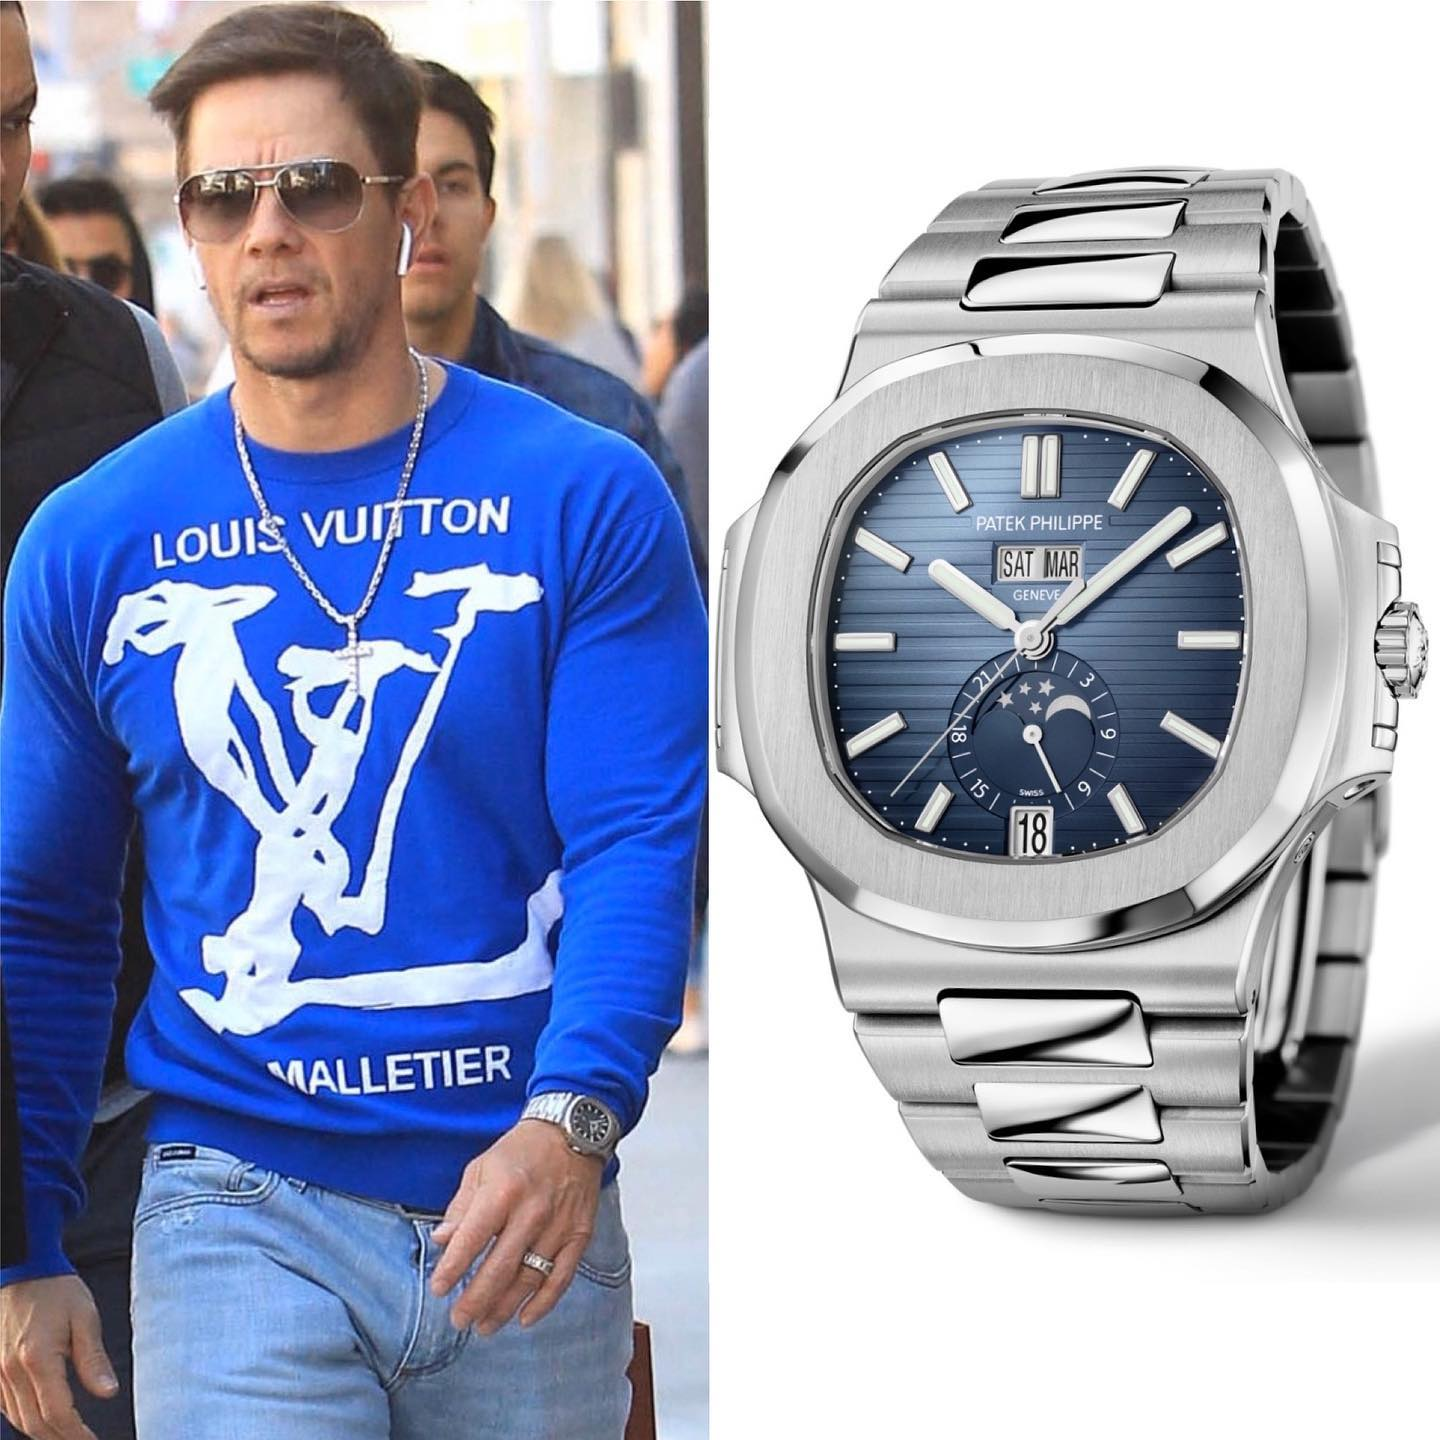 Hollywoods Golden Boy & HUGE watch collector @markwahlberg was recently spotted with one of the hottest newcomers in 2019: The @patekphilippe Nautilus Annual Calendar Gradient Blue ref. 5726-1A-014 ️ 45,600.00 🌐 📸 @superwatchman